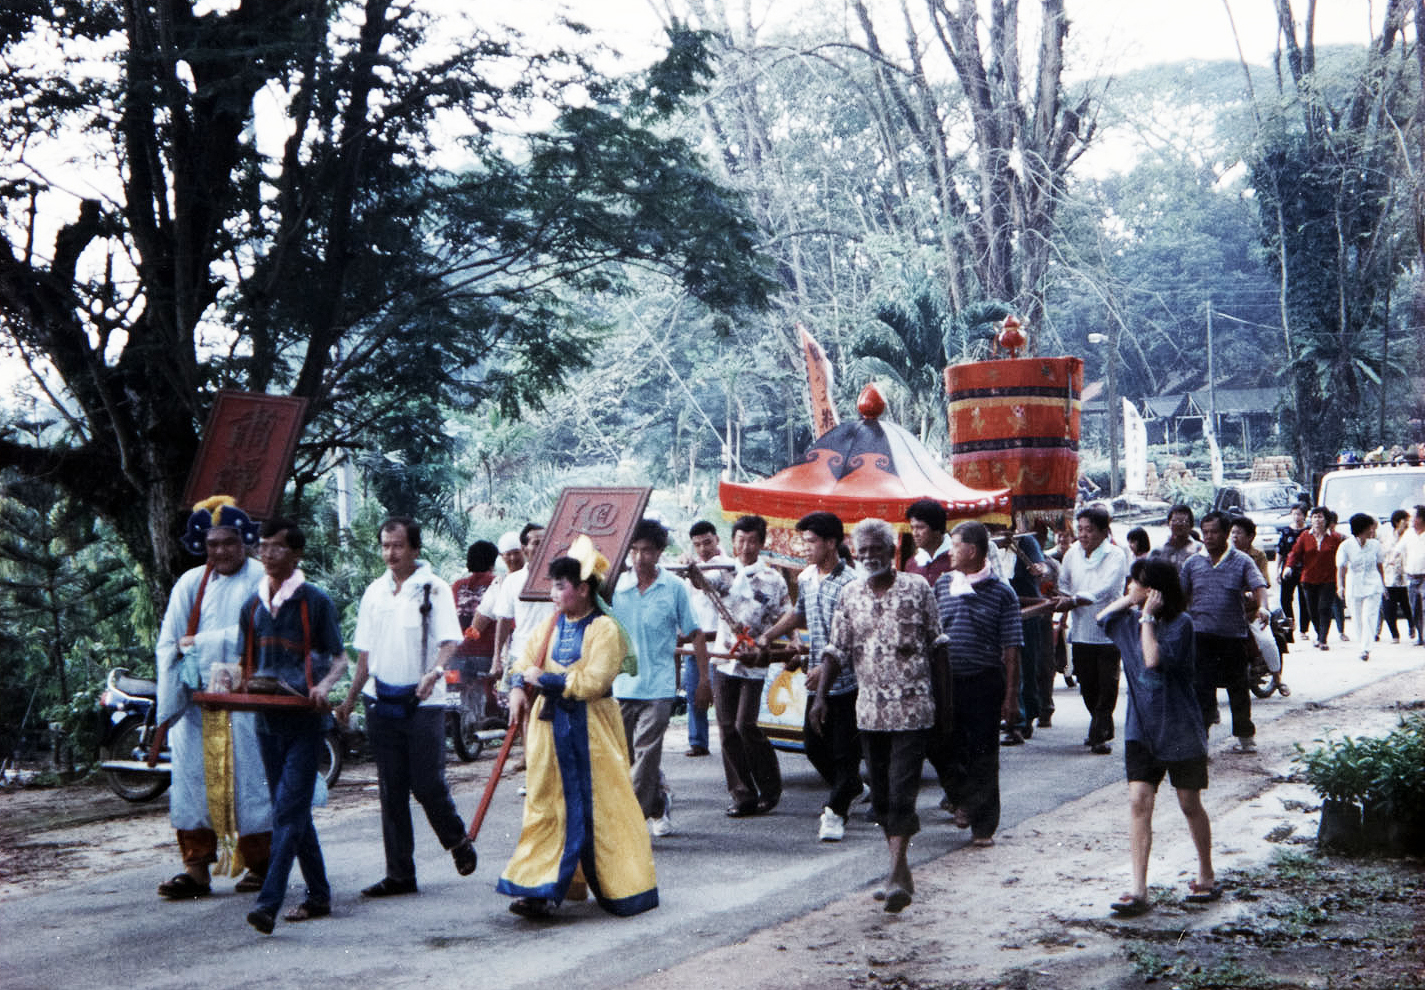 """A procession led by the """"Censer Master""""who is carrying the incense burner of the Taoist deity. (photo courtesy of Fuh Huey Kong)"""